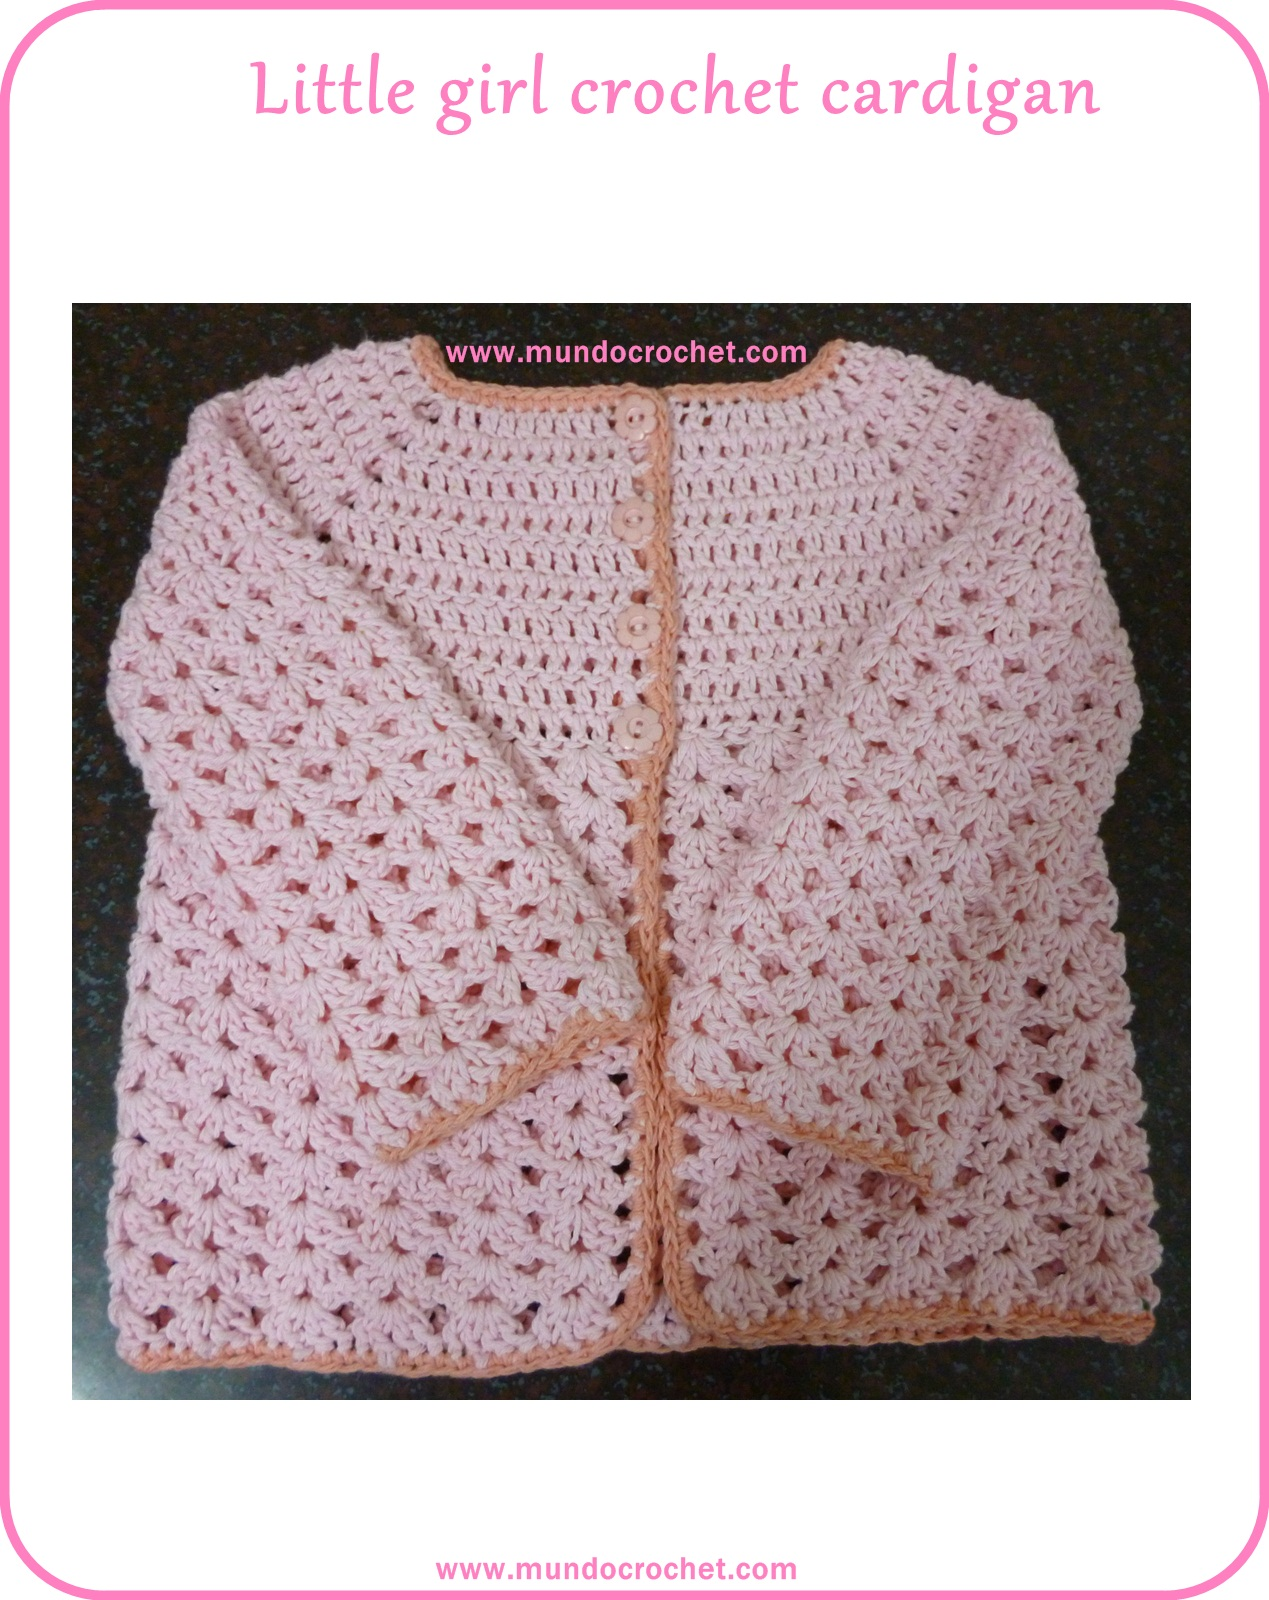 Little girl crochet cardigan